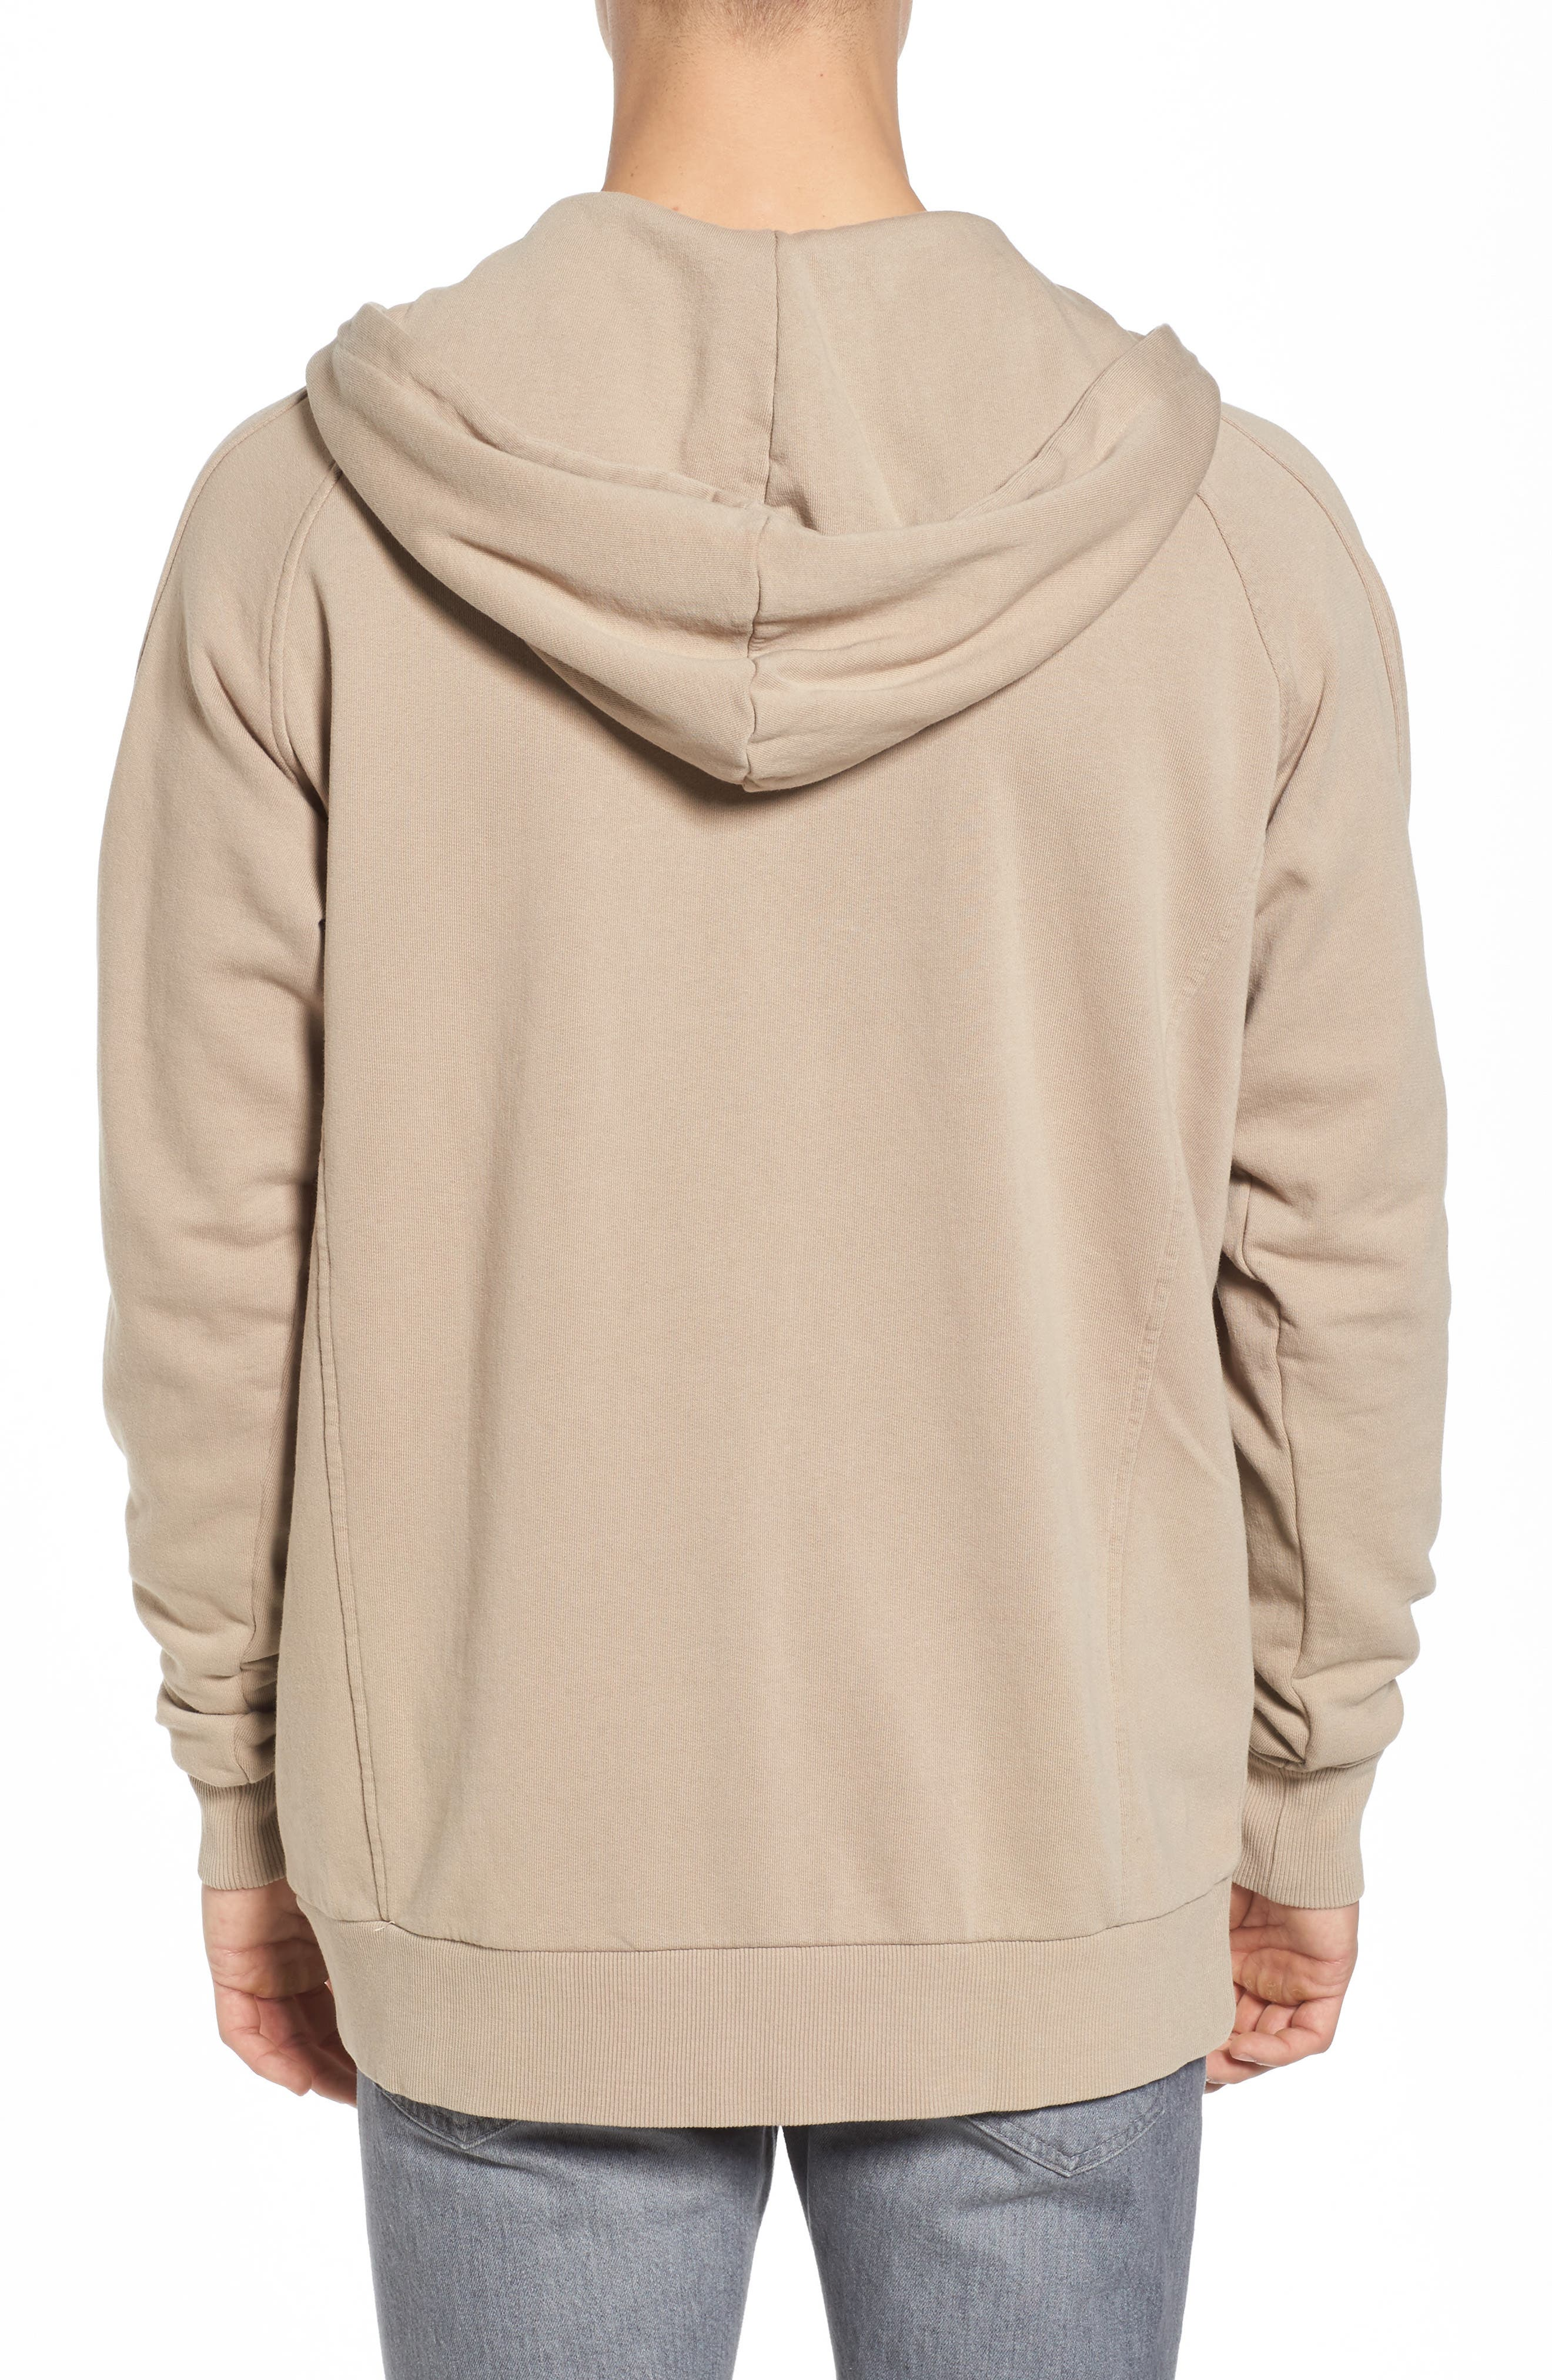 Olympic Zip Pullover Hoodie,                             Alternate thumbnail 2, color,                             260